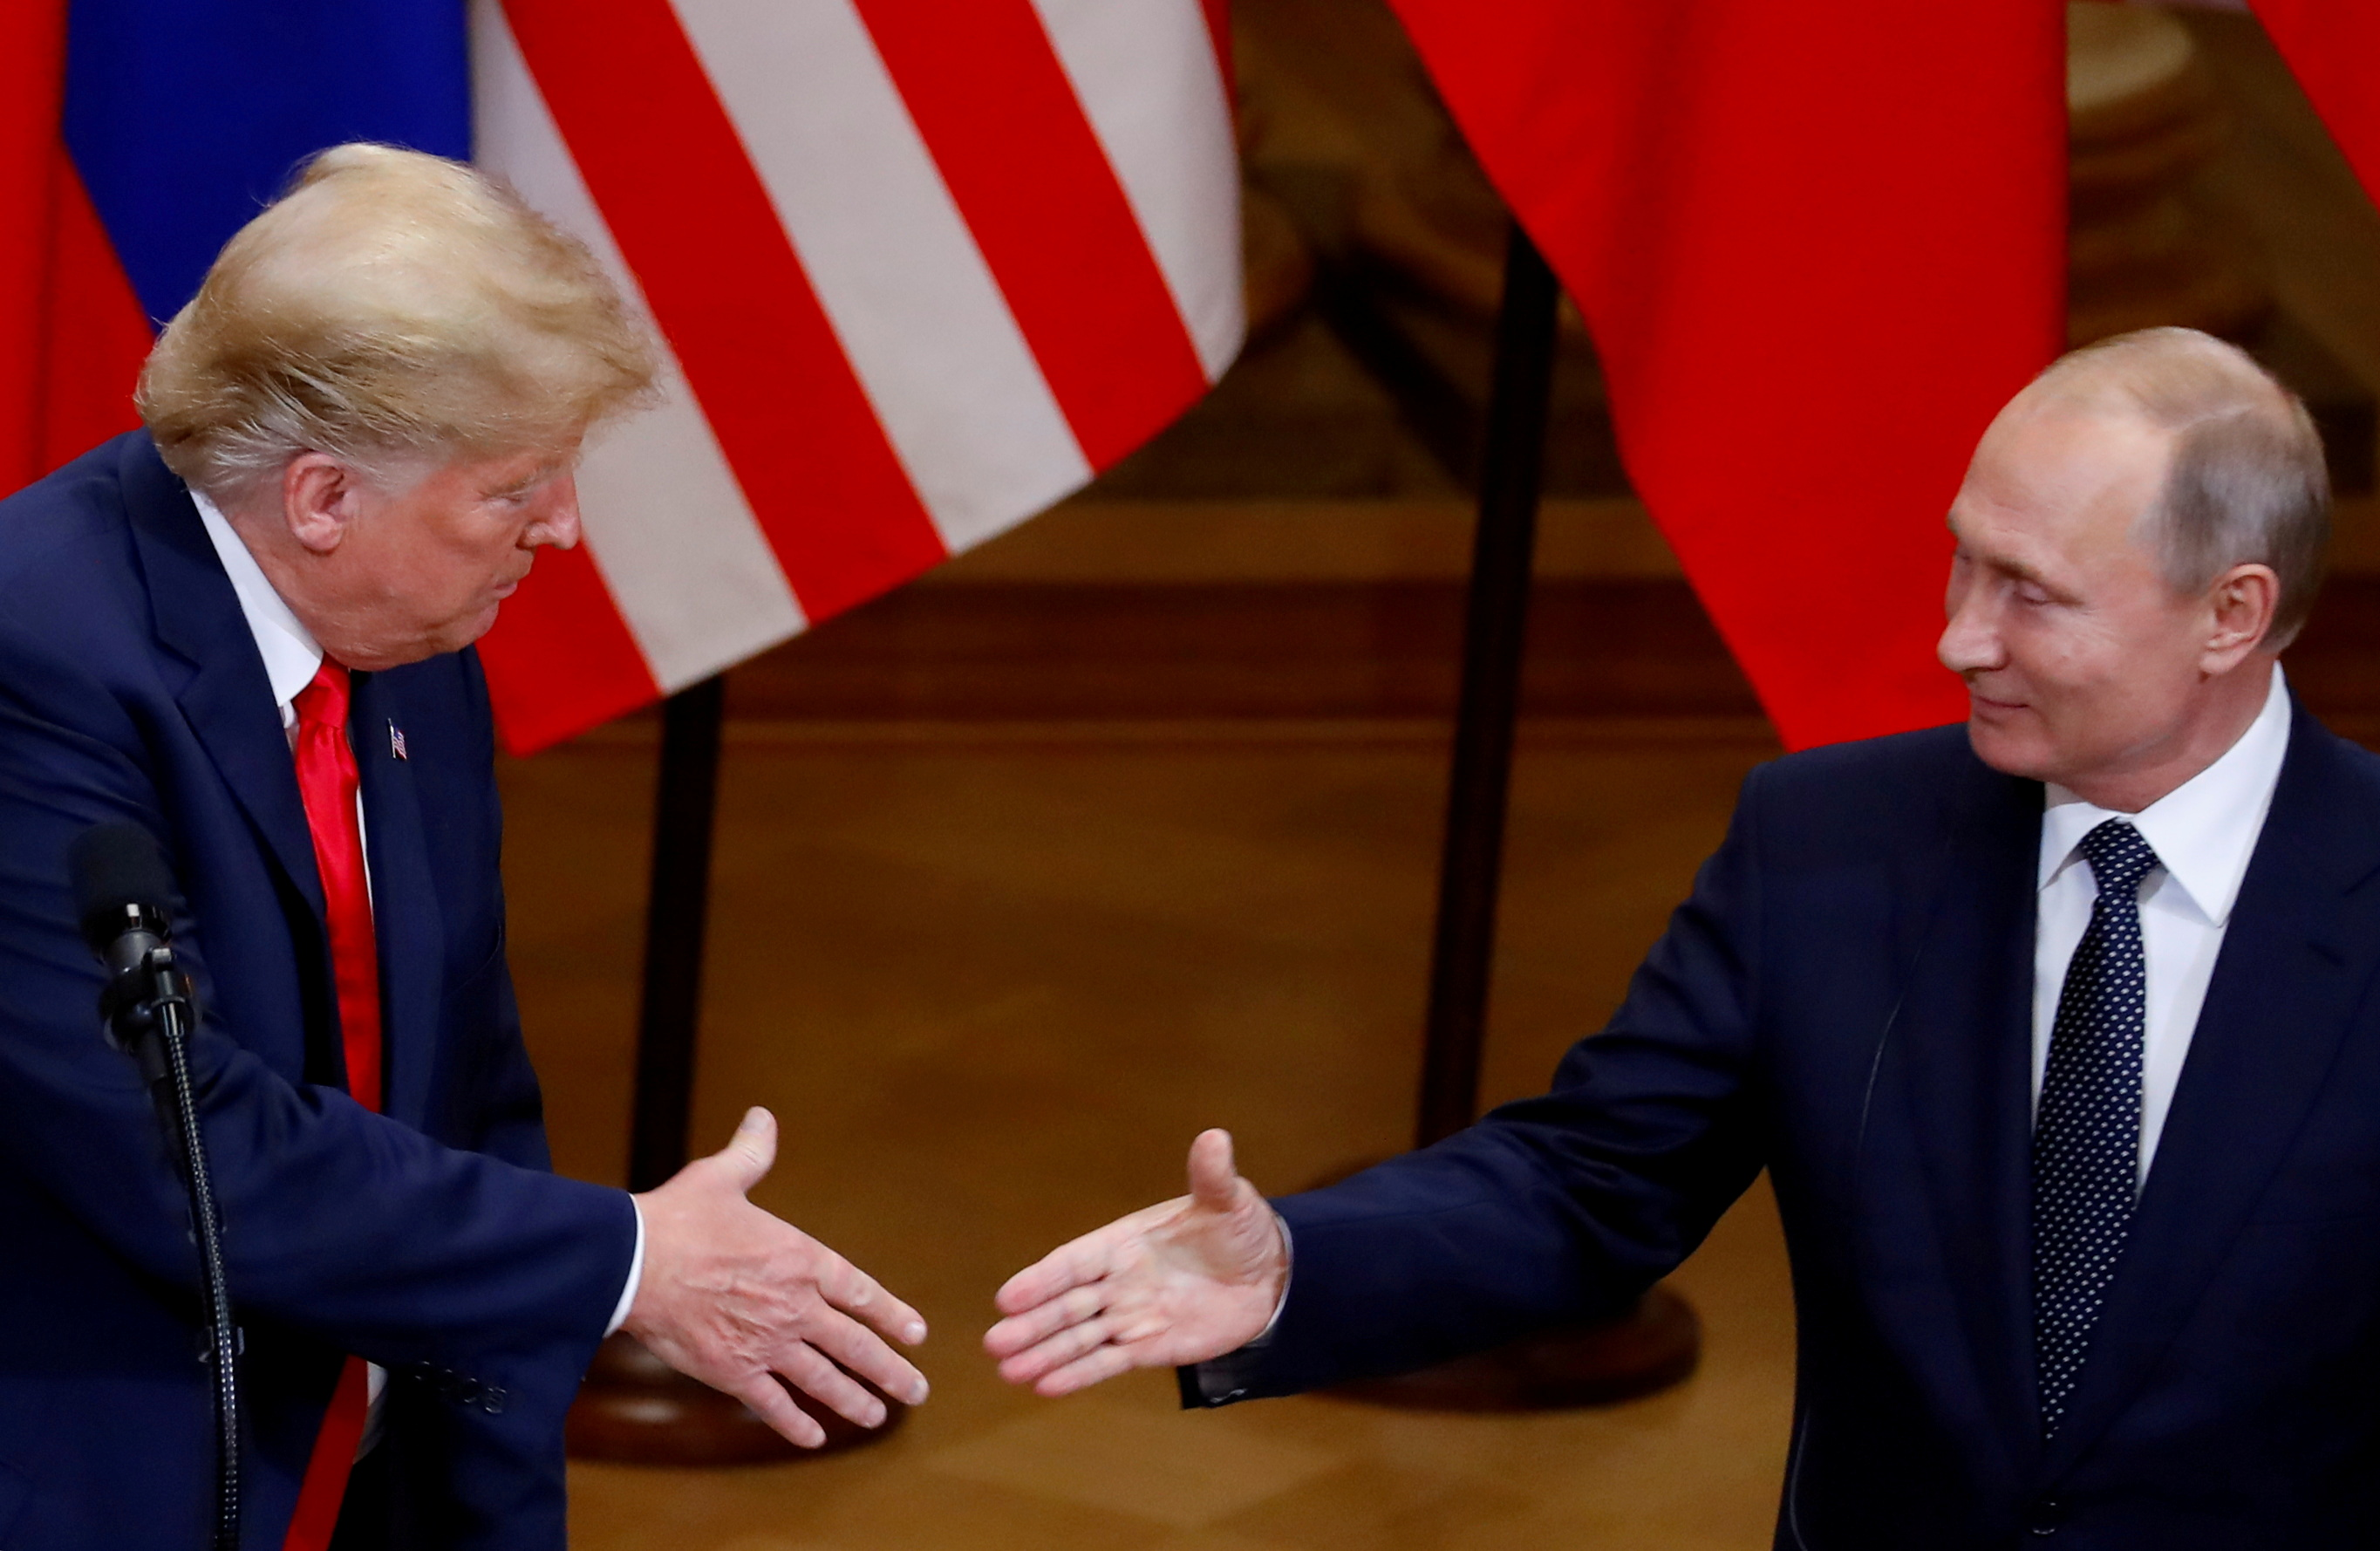 U.S. President Donald Trump and Russian President Vladimir Putin shake hands as they hold a joint news conference after their meeting in Helsinki, Finland, July 16, 2018. REUTERS/Leonhard Foeger/File Photo